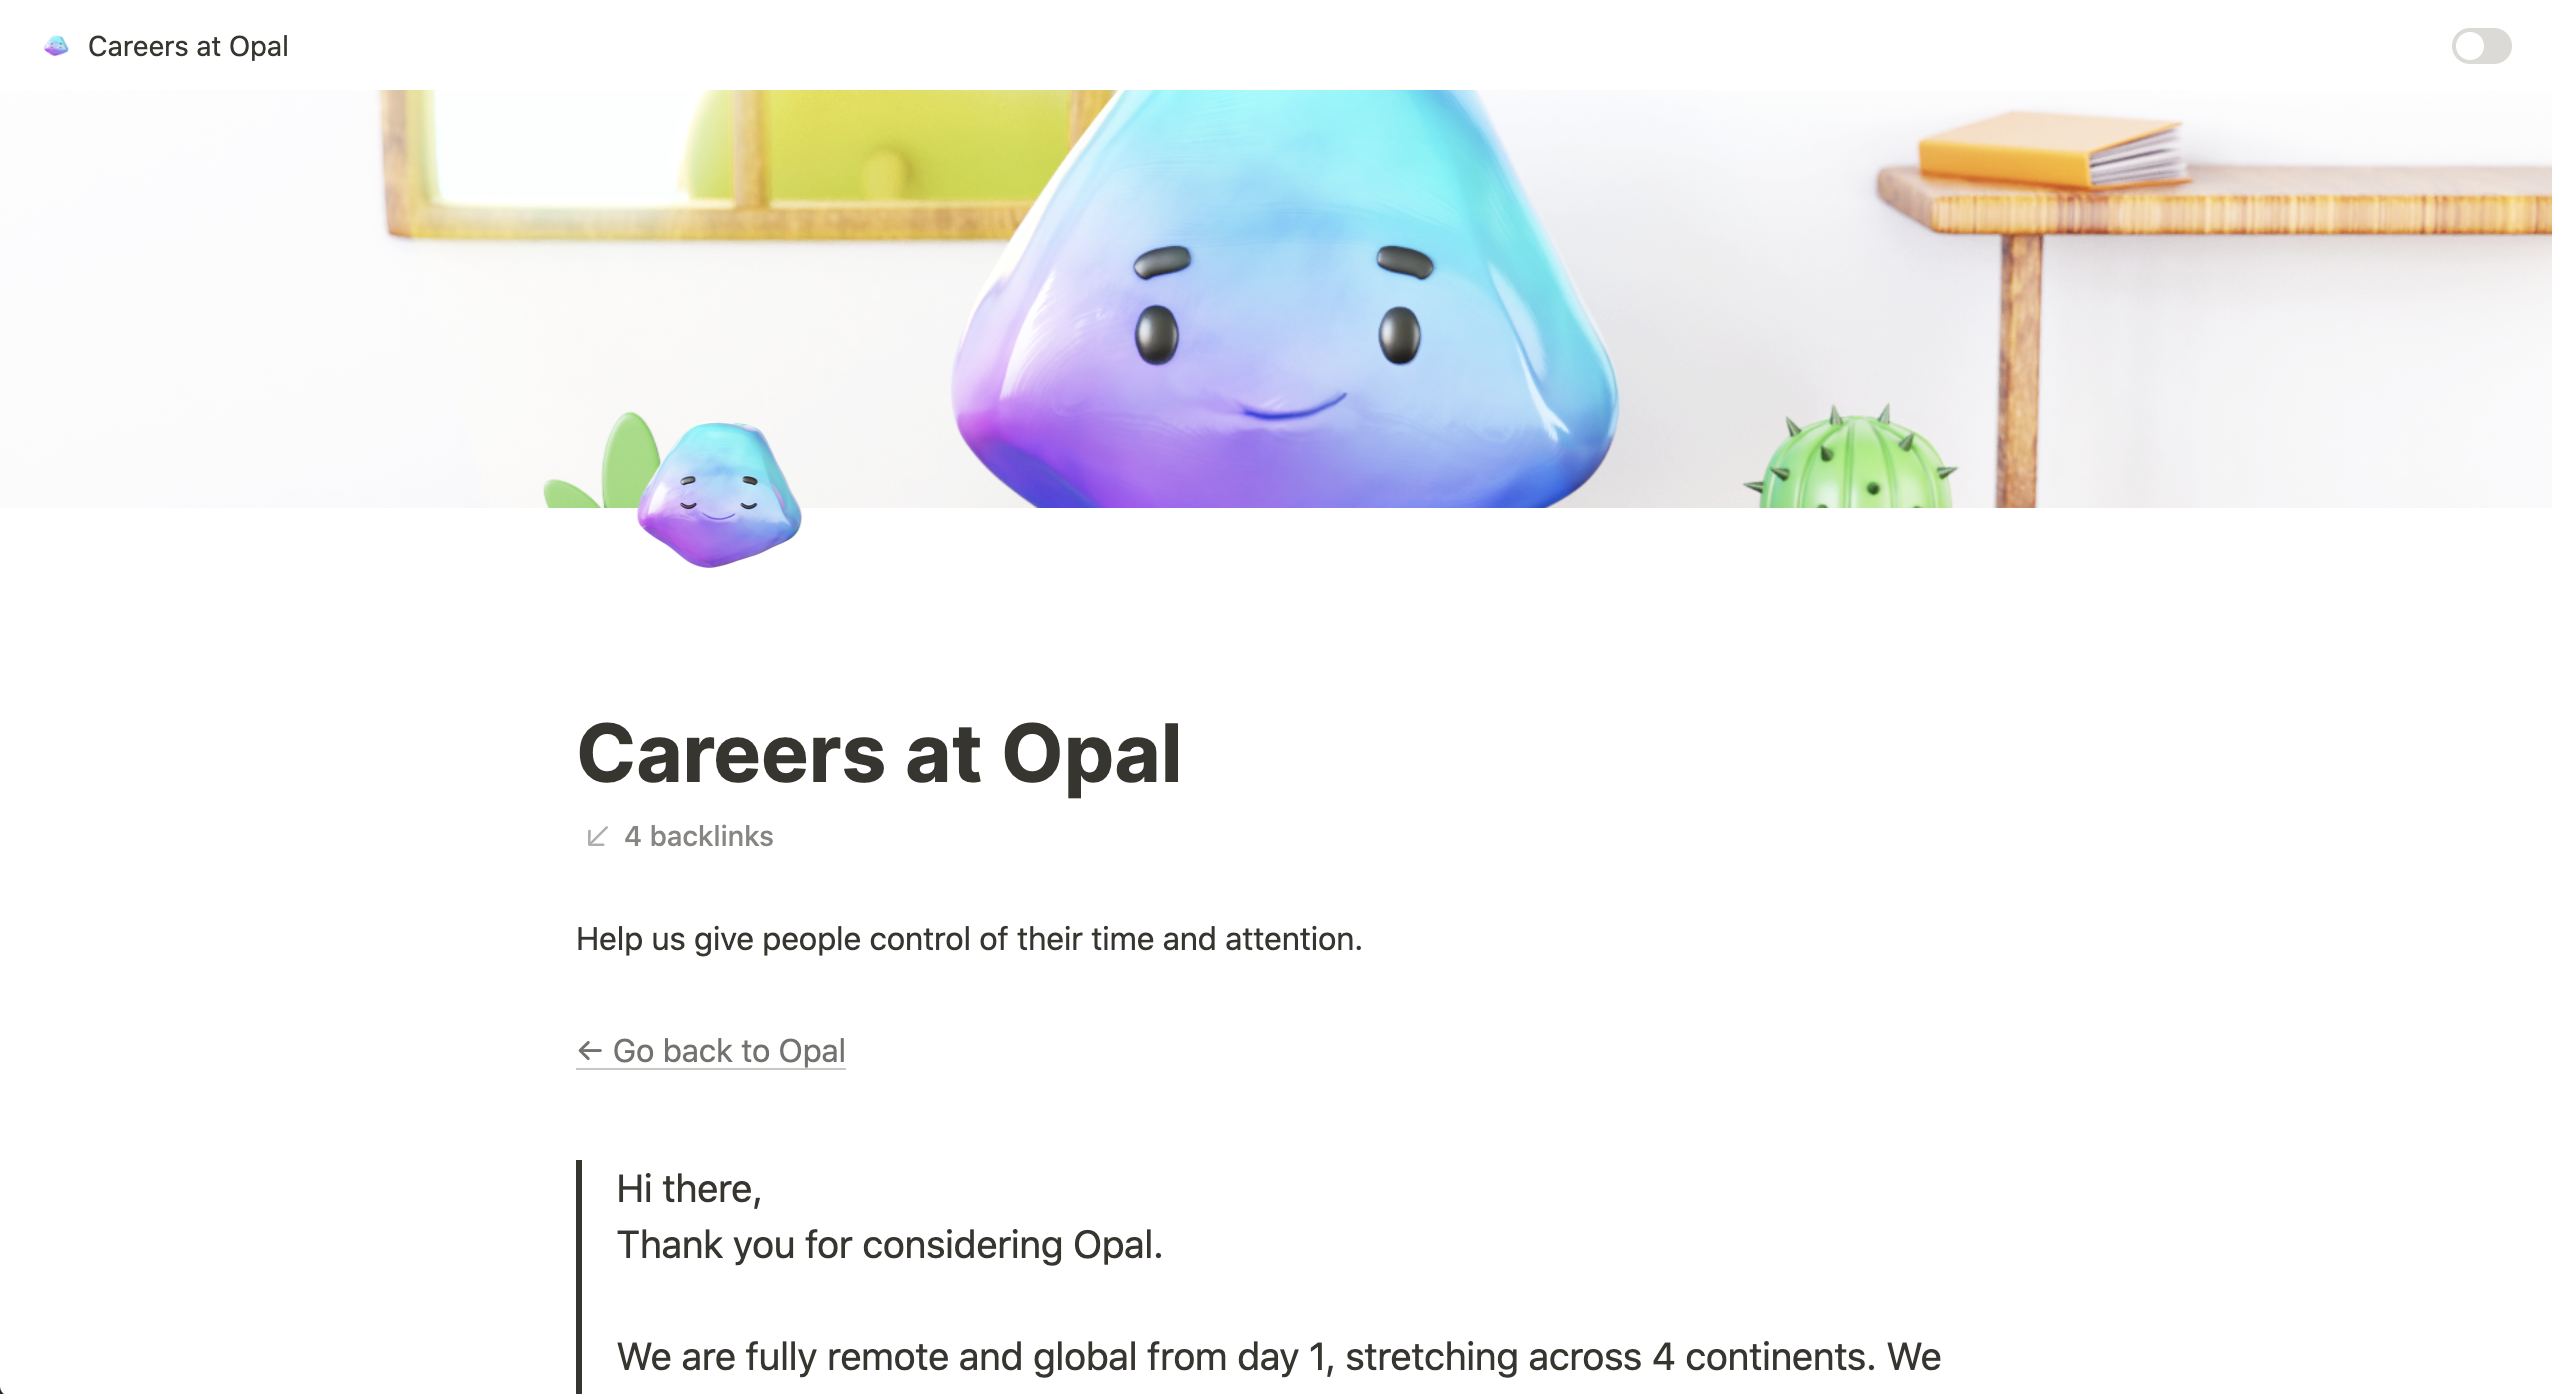 Careers at Opal